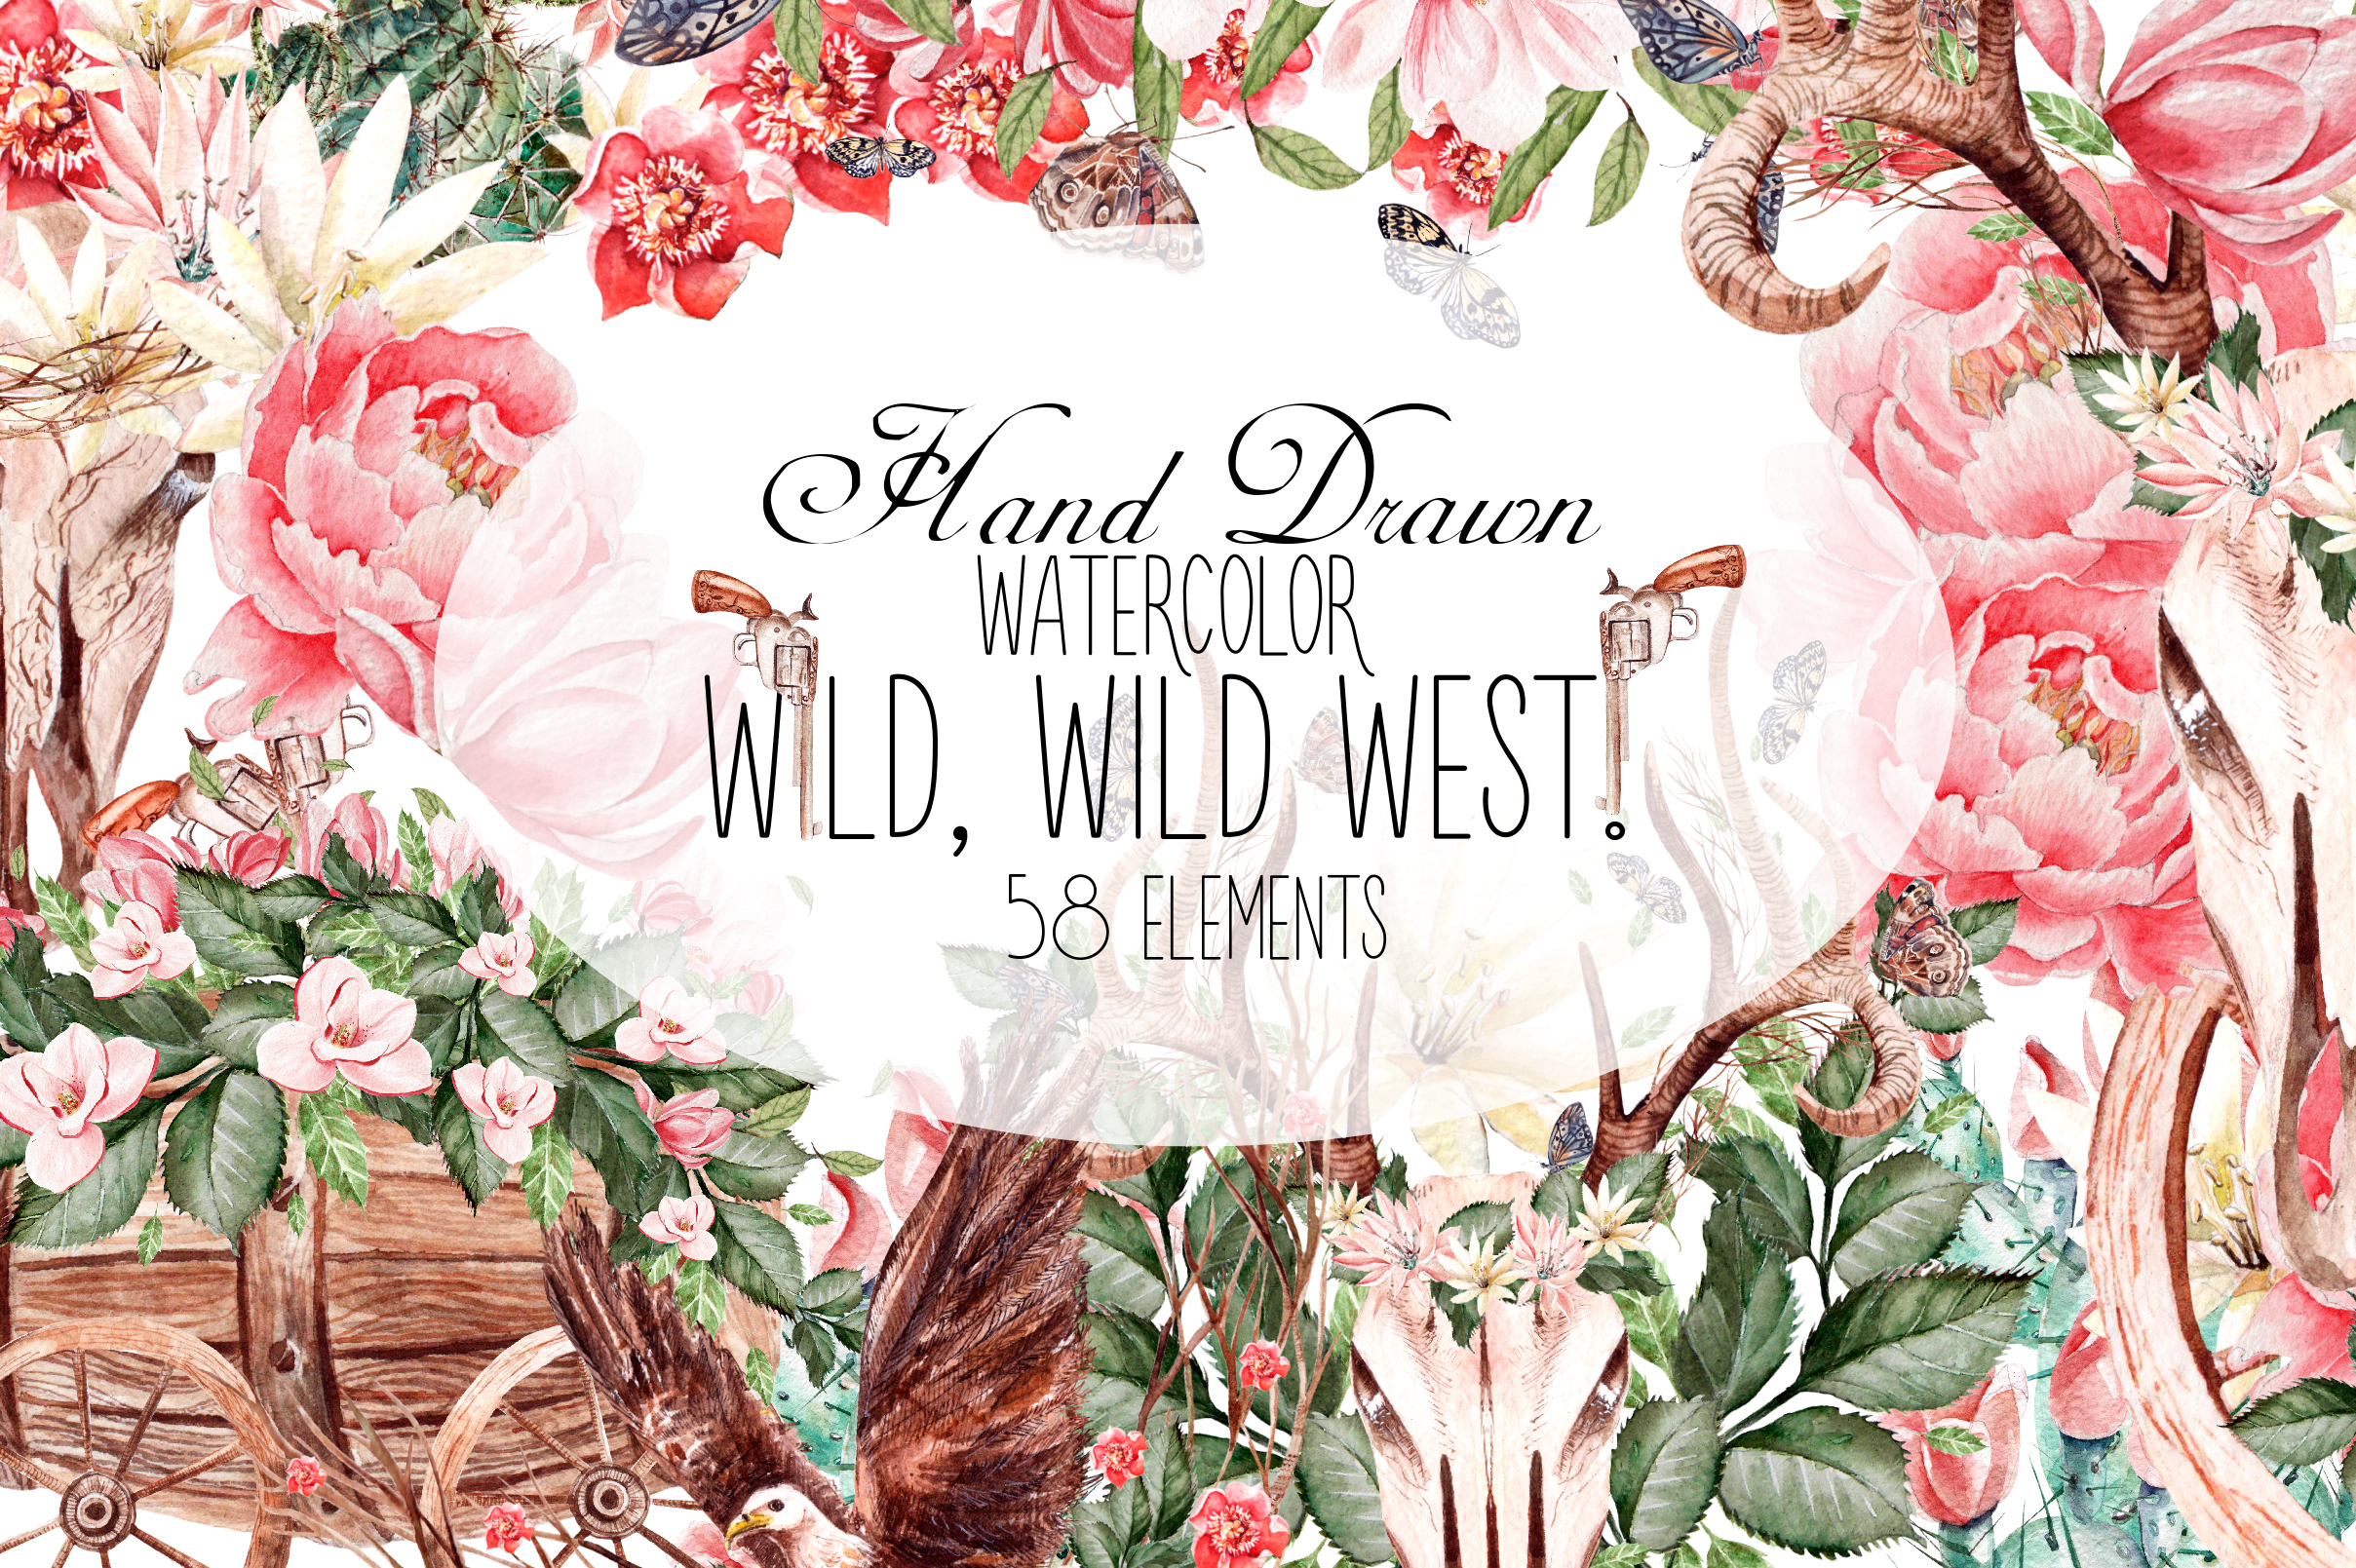 HandDrawnWatercolor WILD, WILD WEST! example image 1